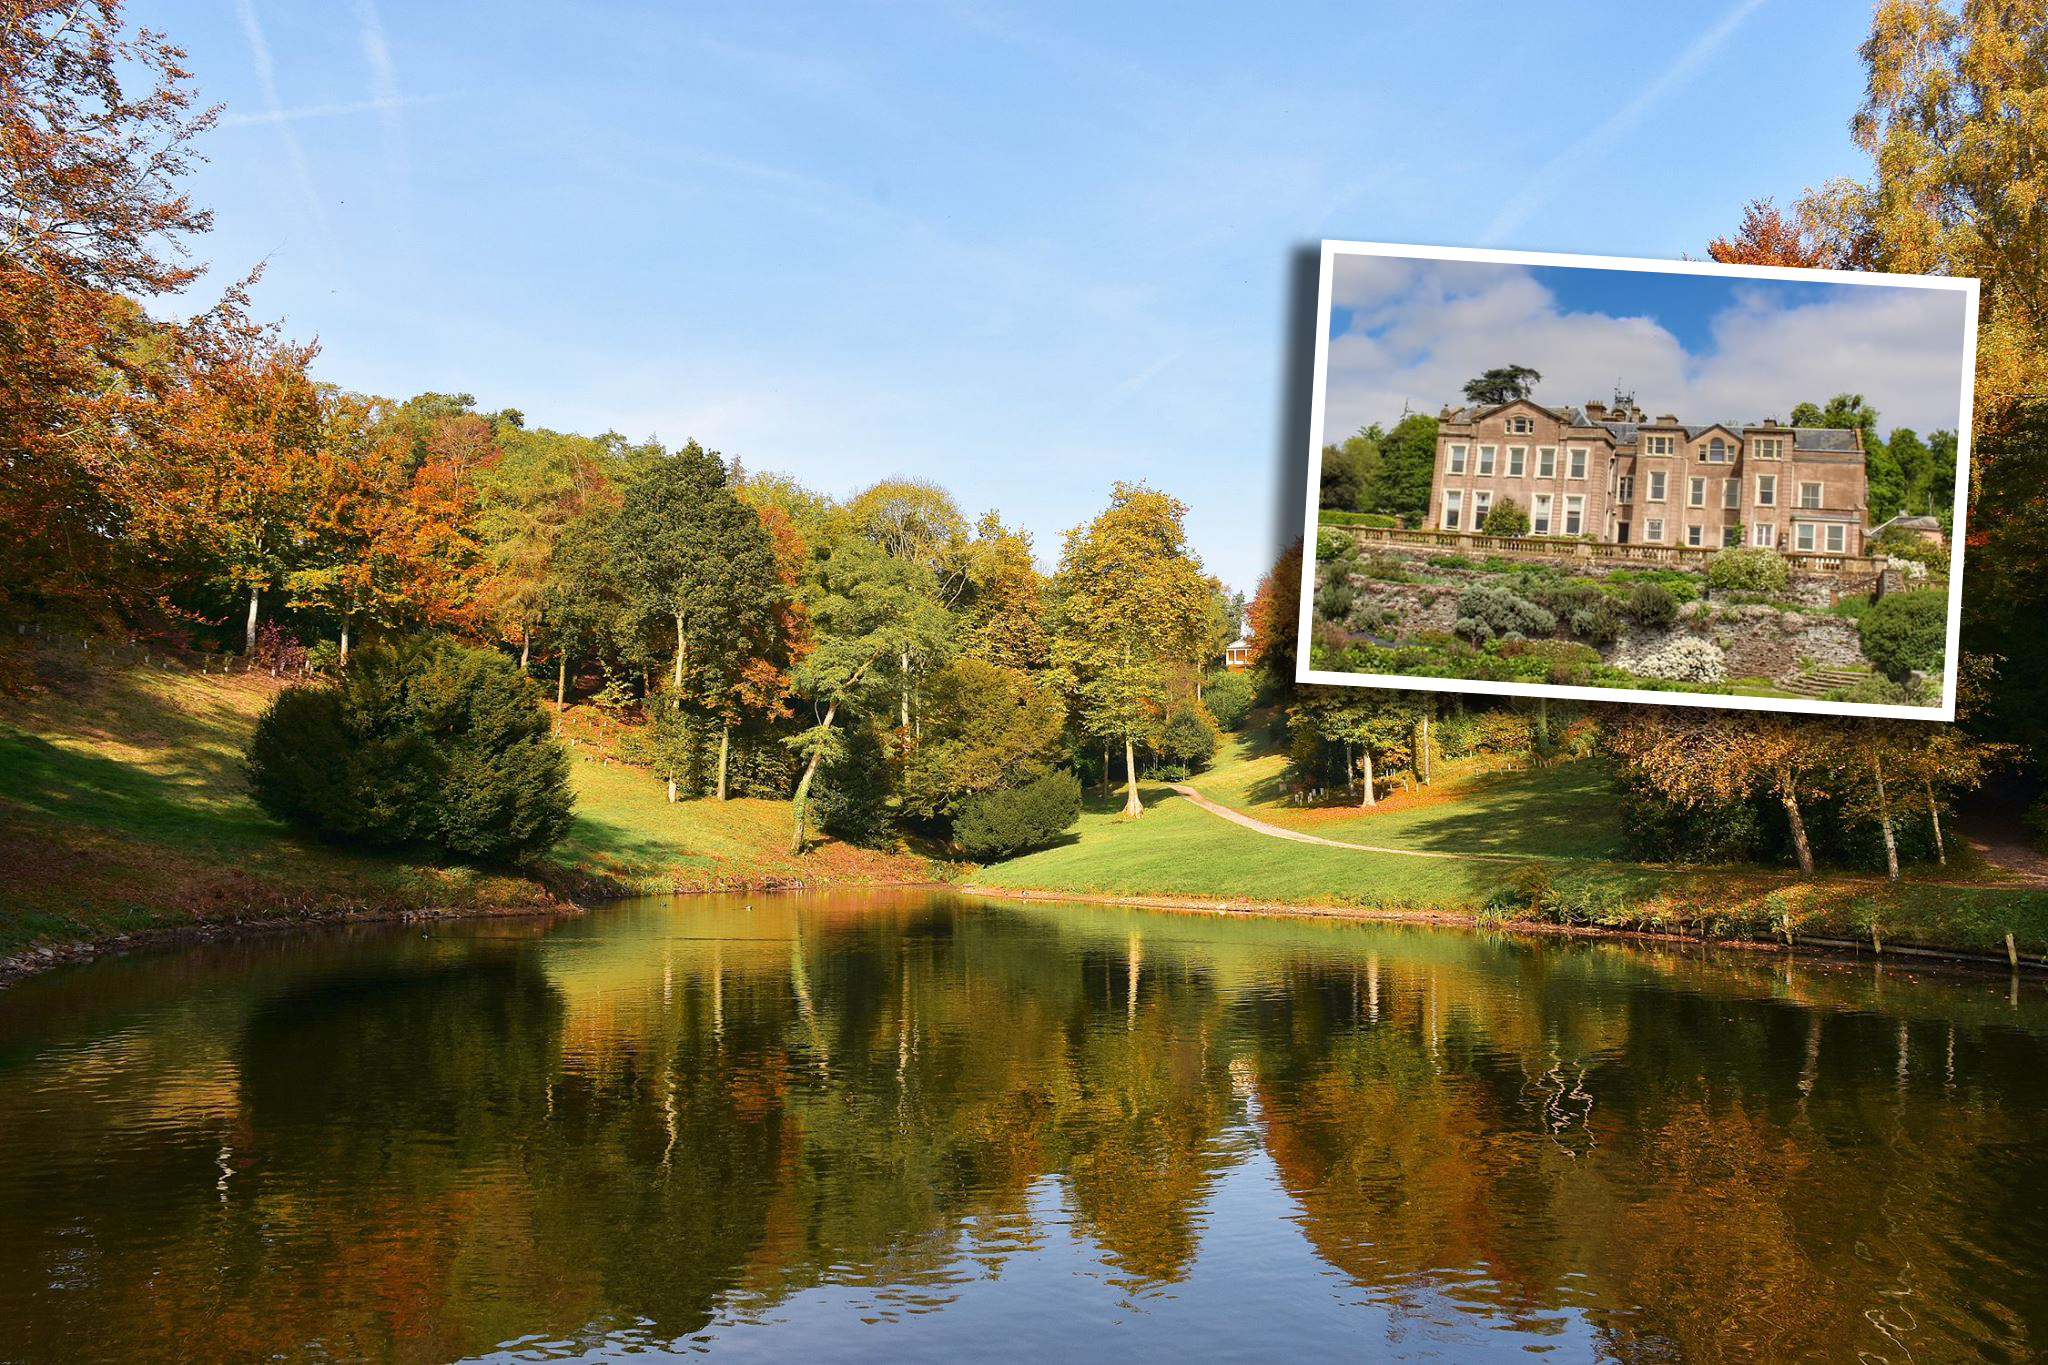 SALE: The land surrounding Hestercombe House will be bought by the Trust